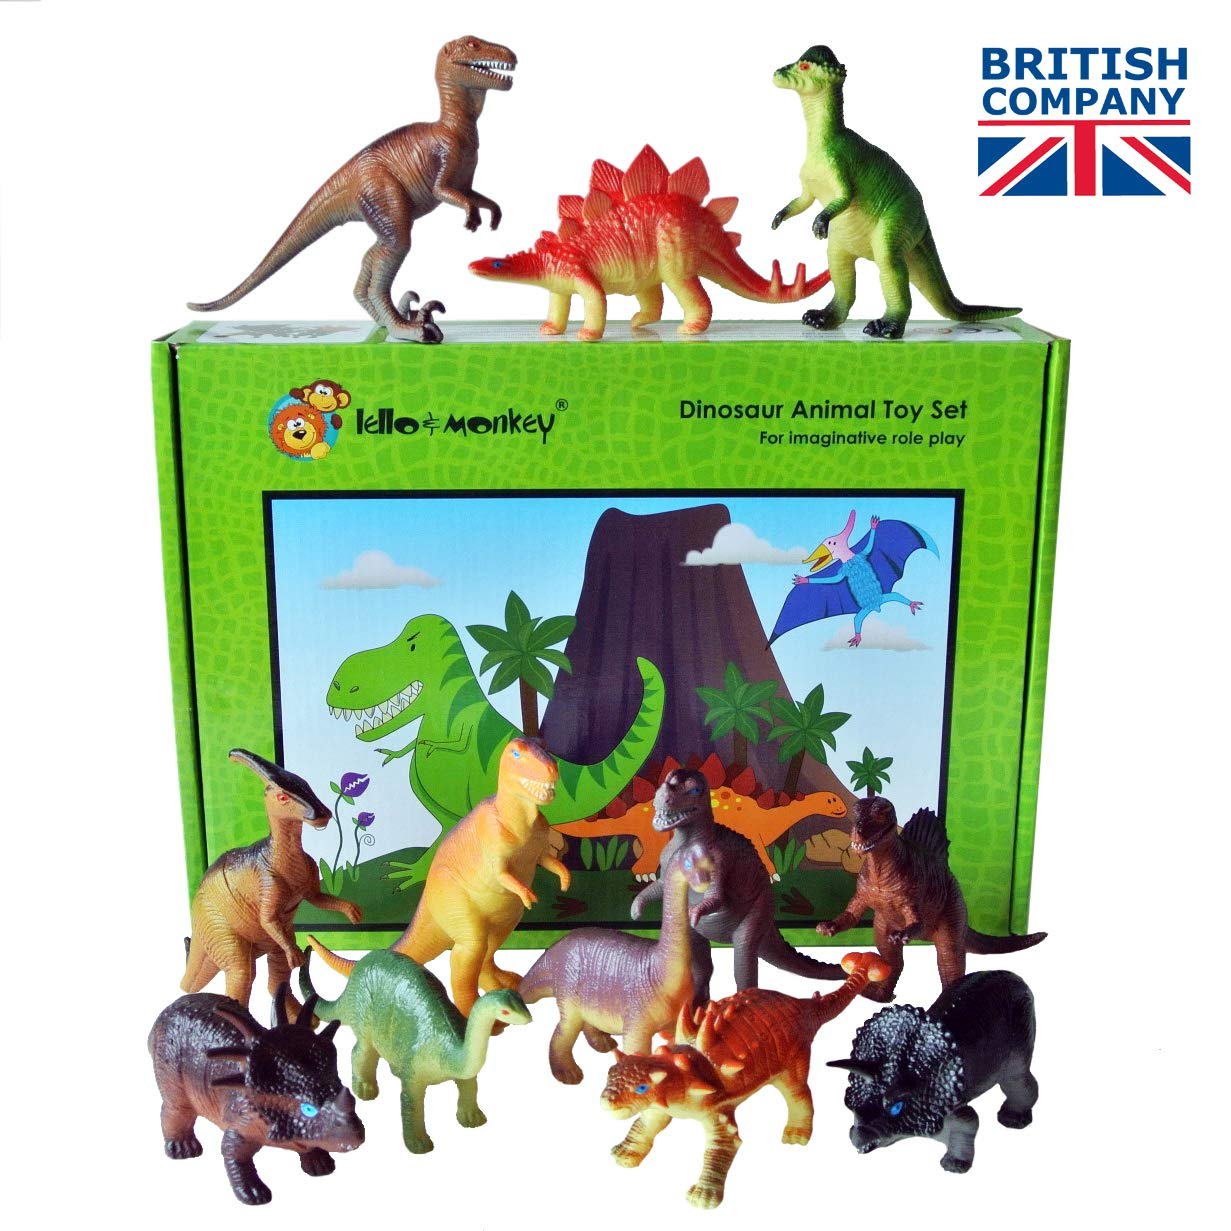 Dinosaur toys set of 12, plastic dinosaurs, dinosaur toys for boys,  toddlers, girls age 3 plus - Large set of dinosaur figures with names and  gift